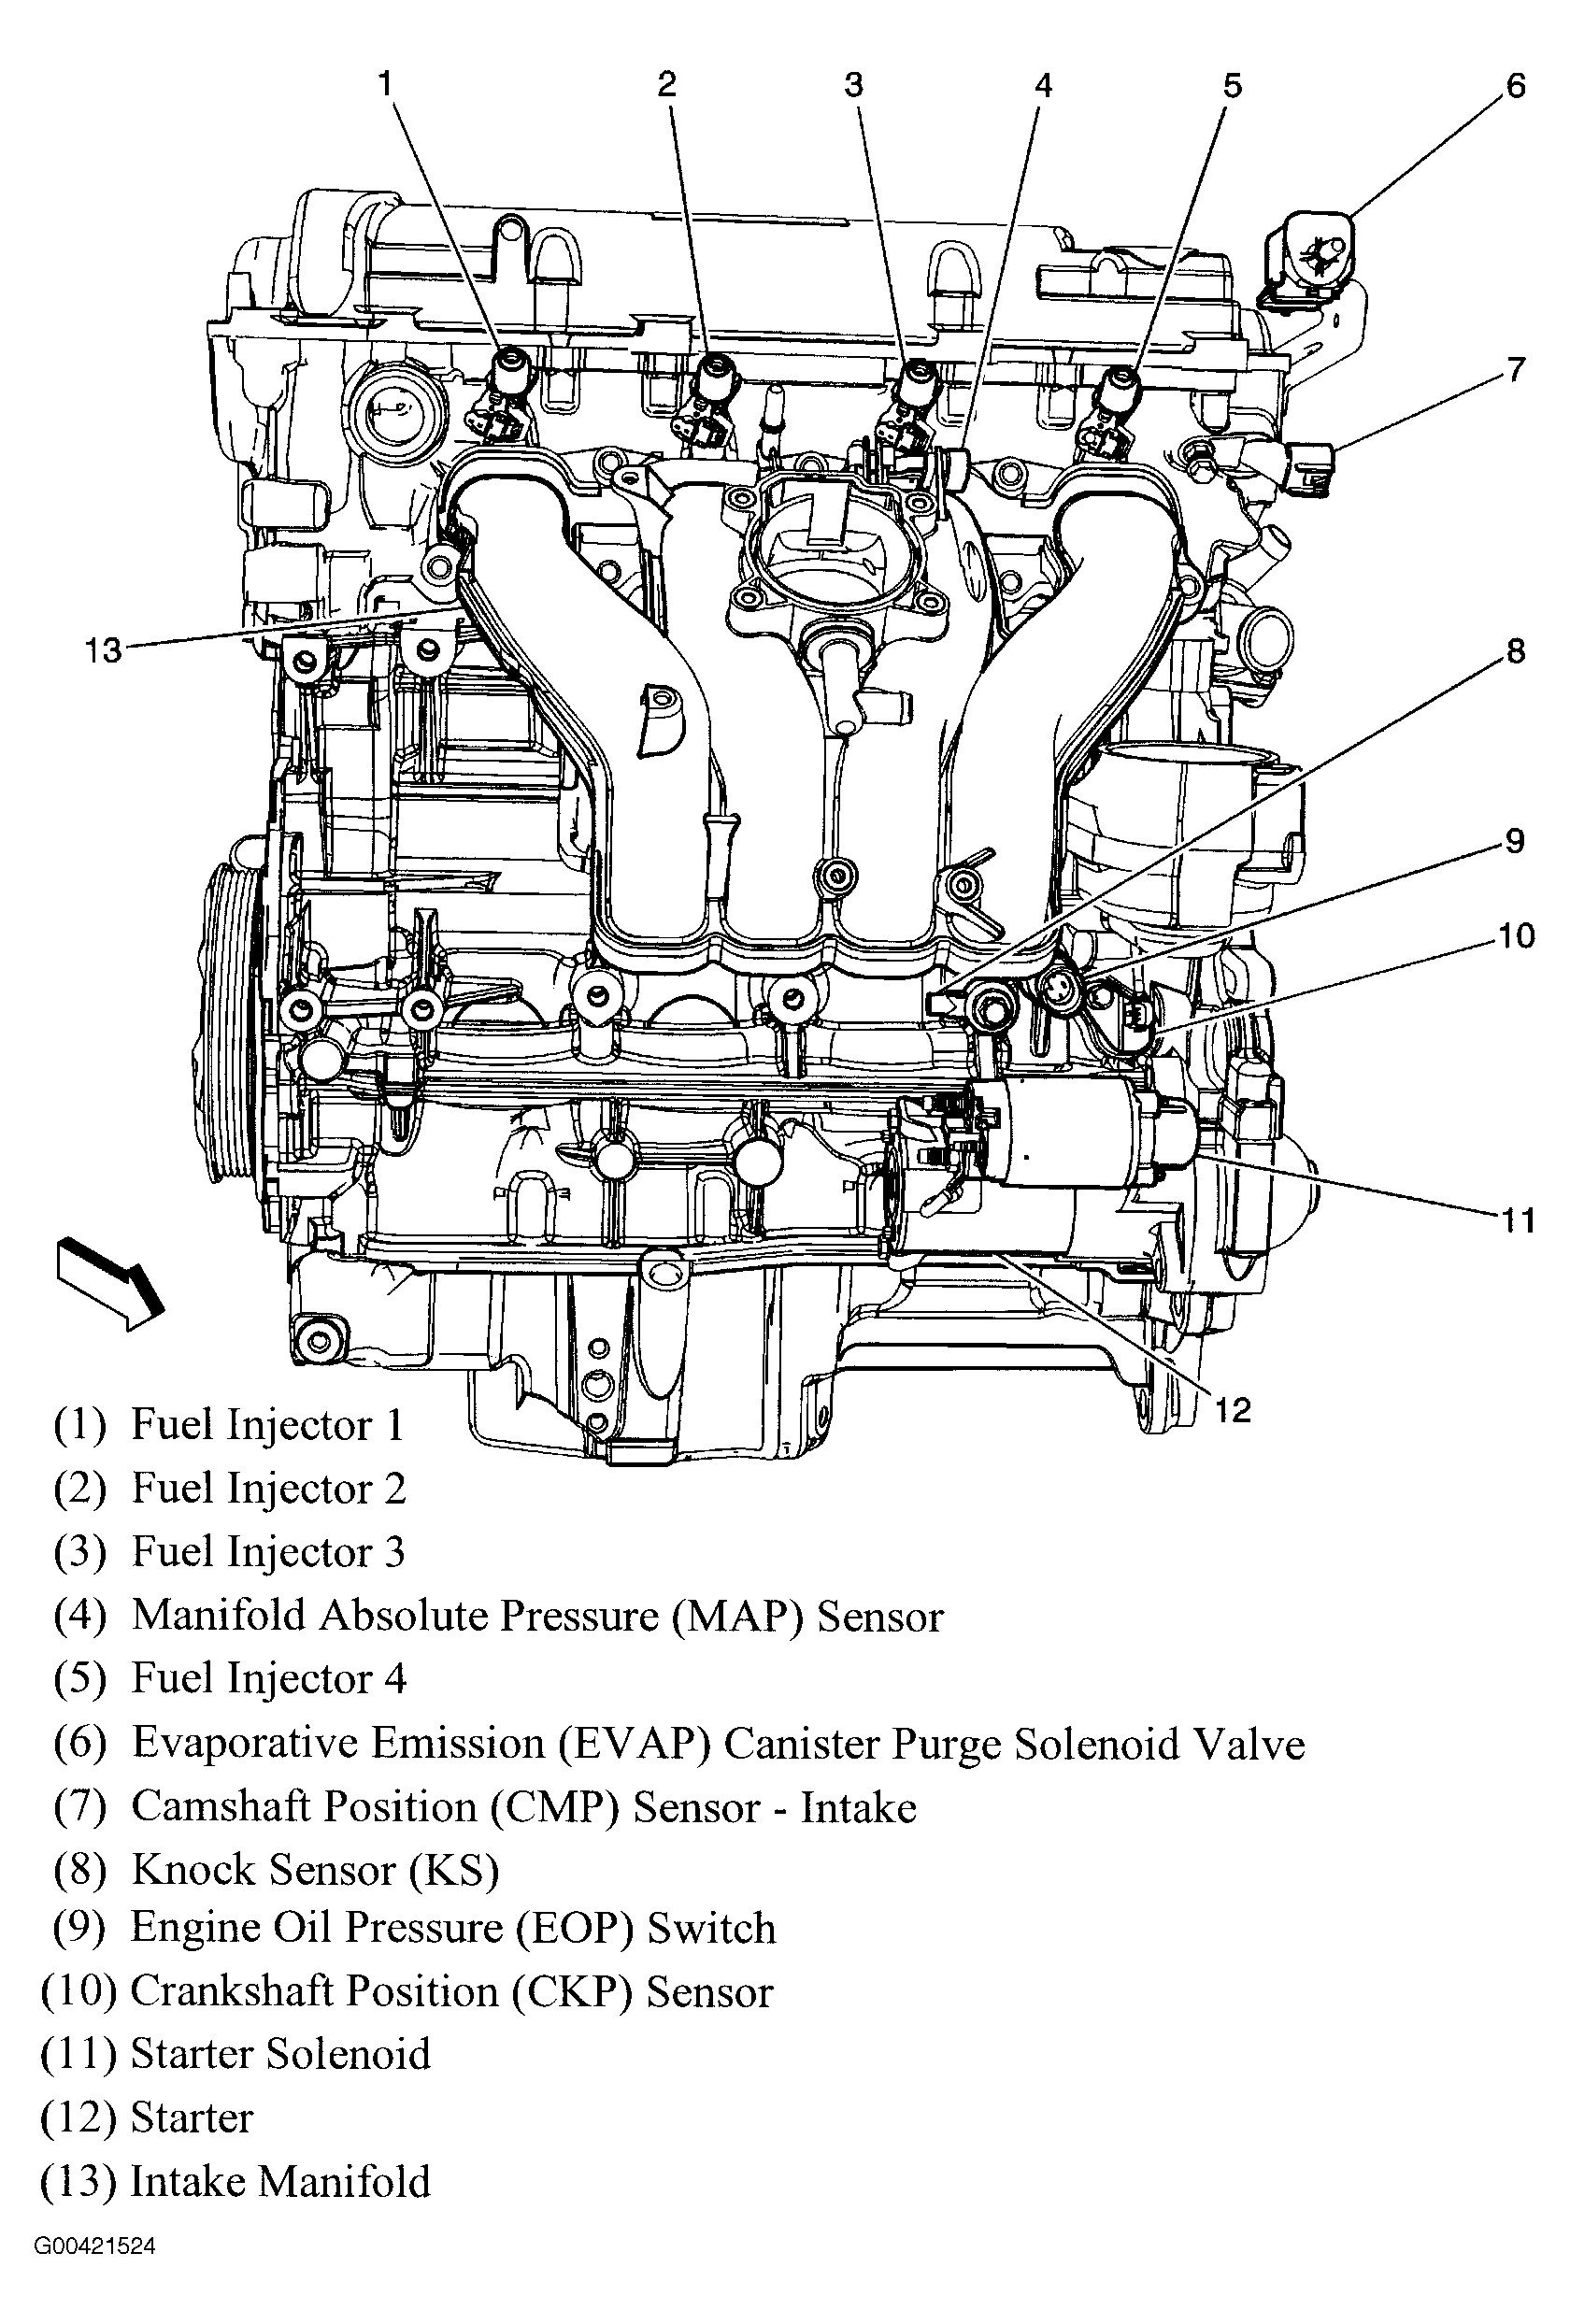 Original on 2001 Eclipse V6 Engine